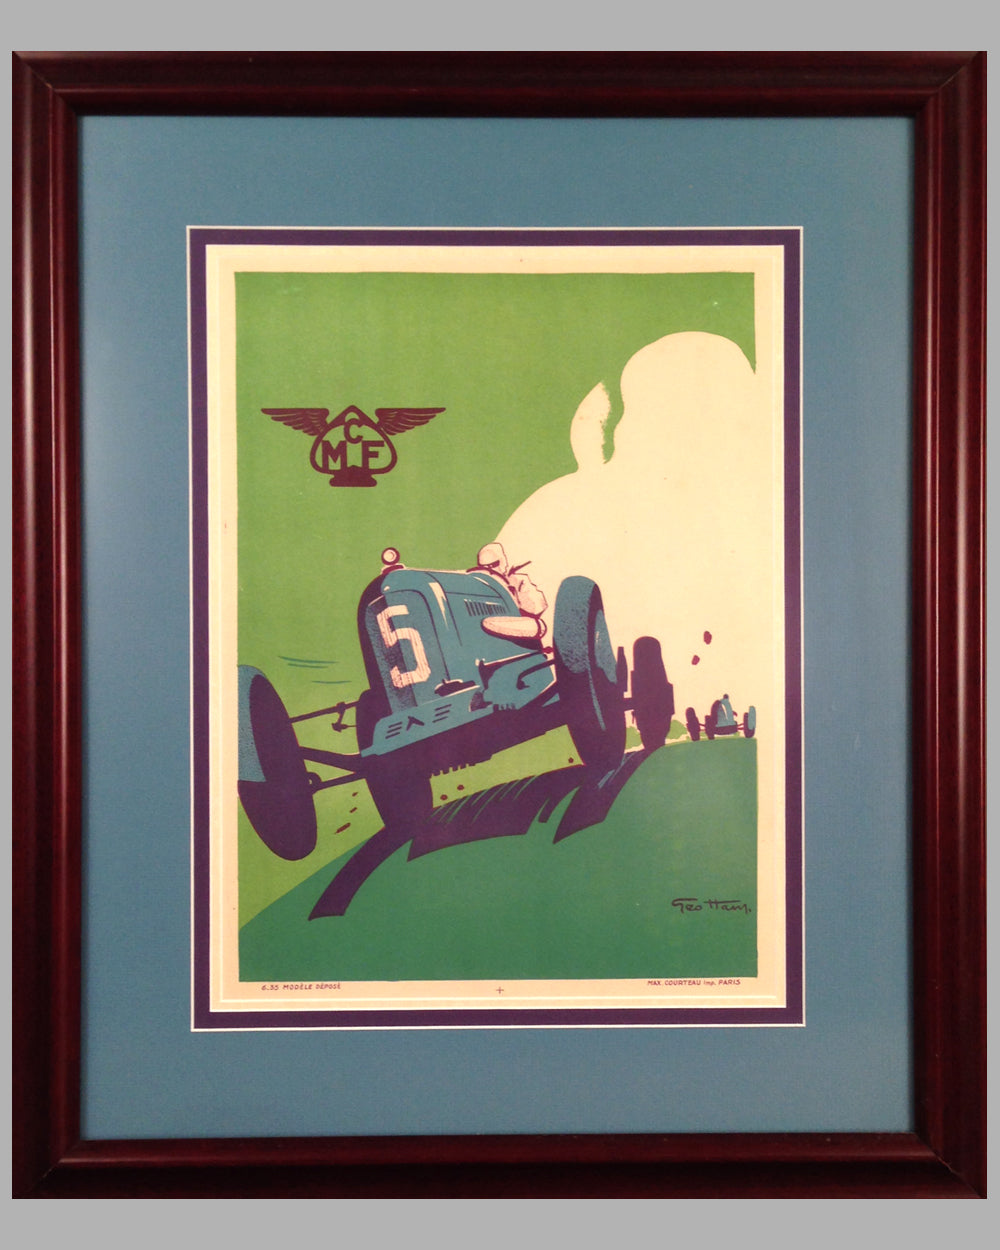 MCF (Motor Club de France) original 1935 poster by Geo Ham